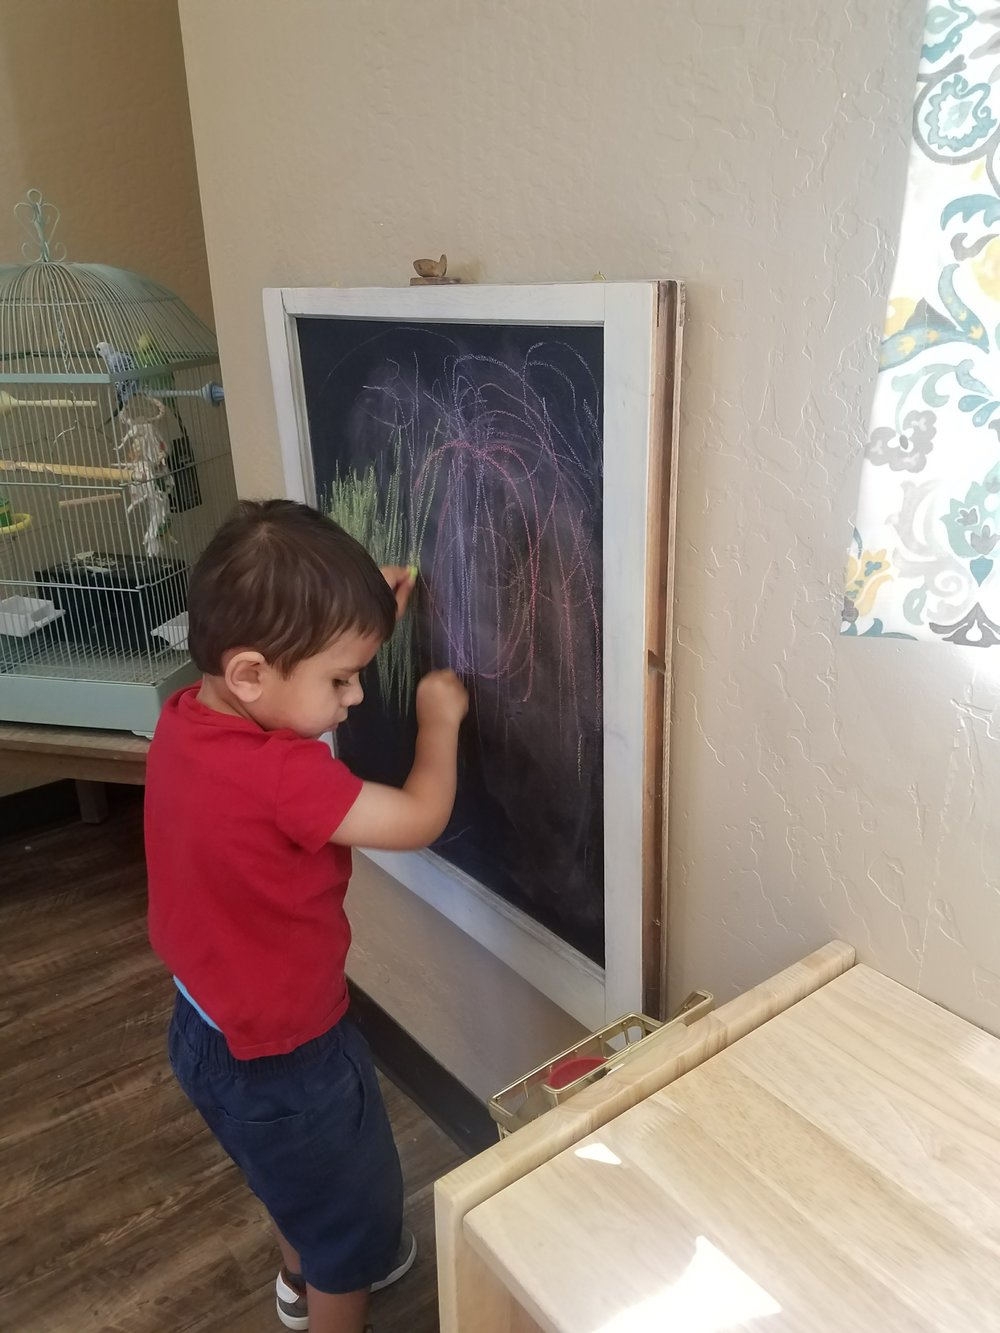 Using the chalk board to freely draw as the development of gross motor skills are supported